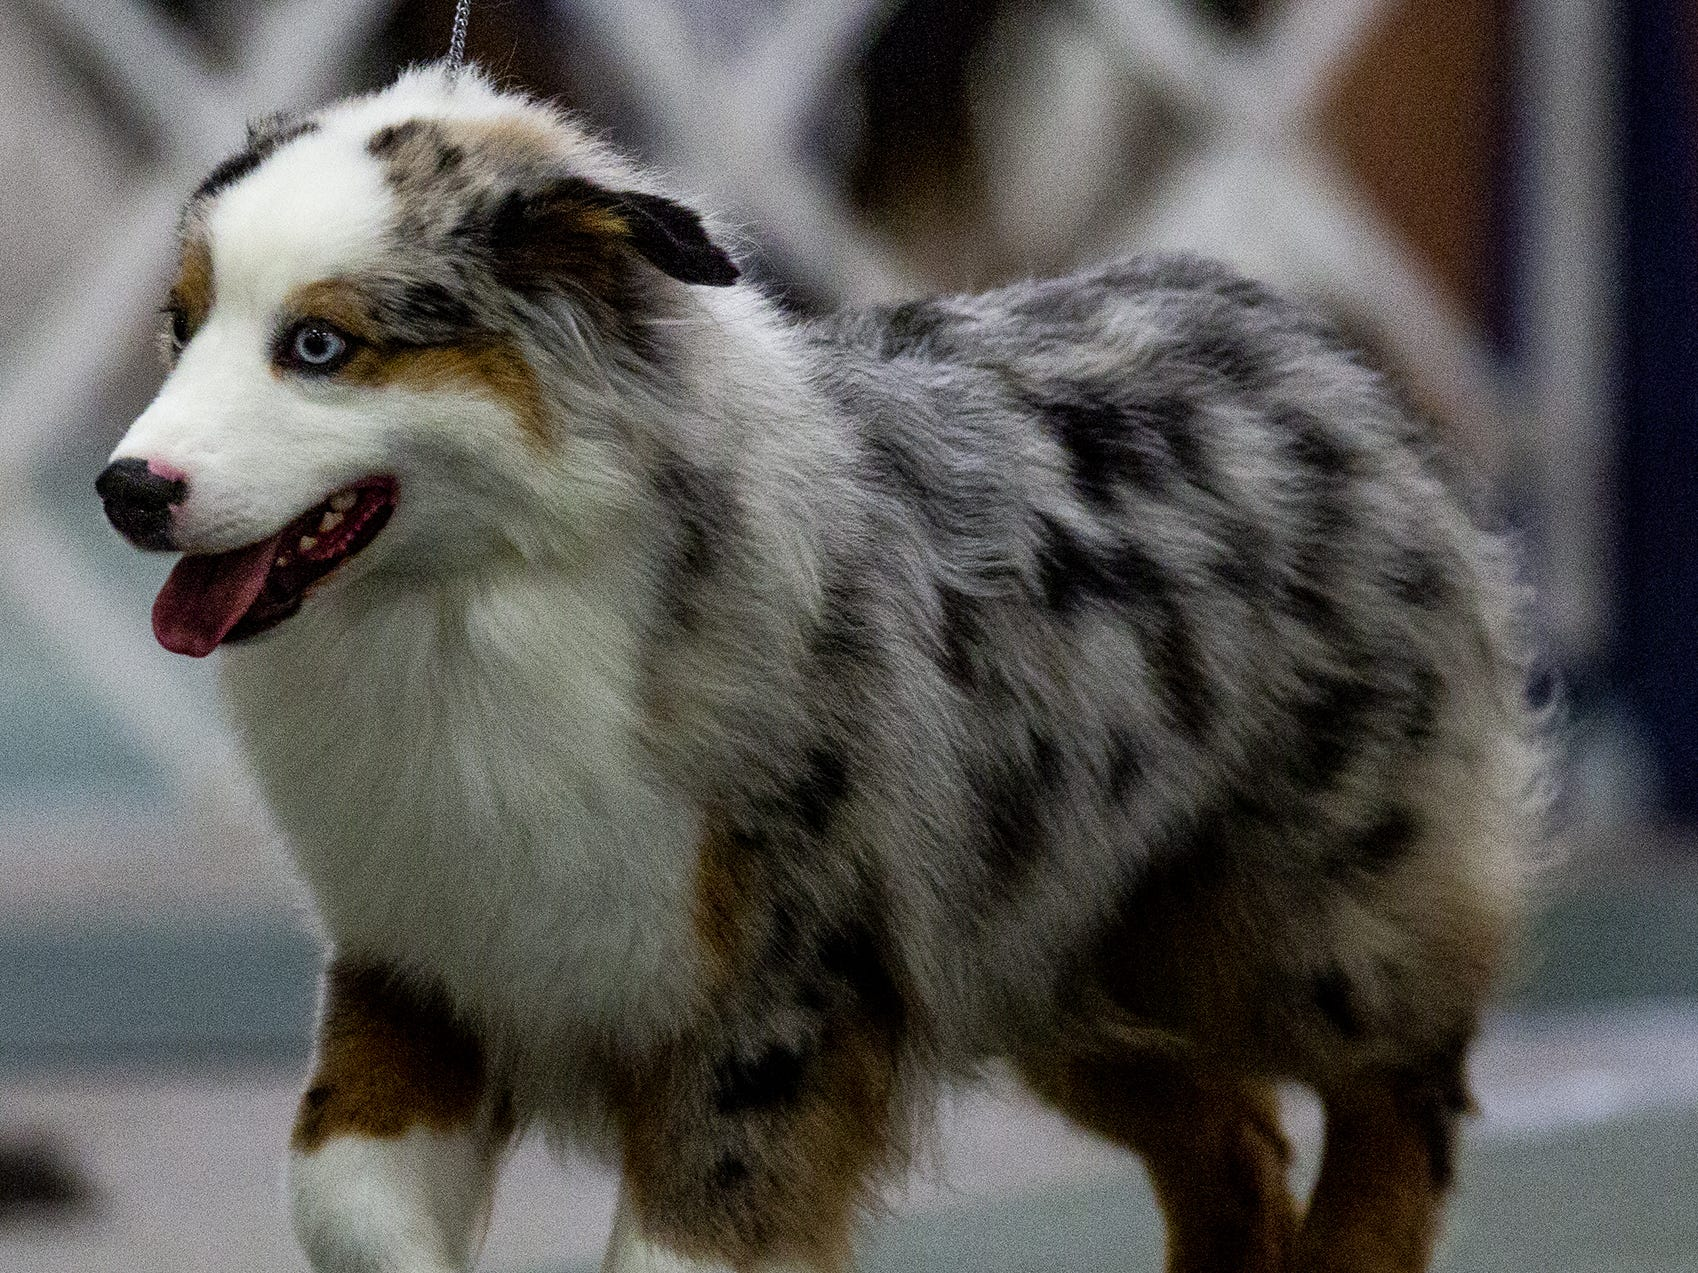 An Australian Shepherd pup learns the ropes at the 2019 Kentuckiana Cluster of Dog Shows at the Kentucky Exposition Center. March 14, 2019.